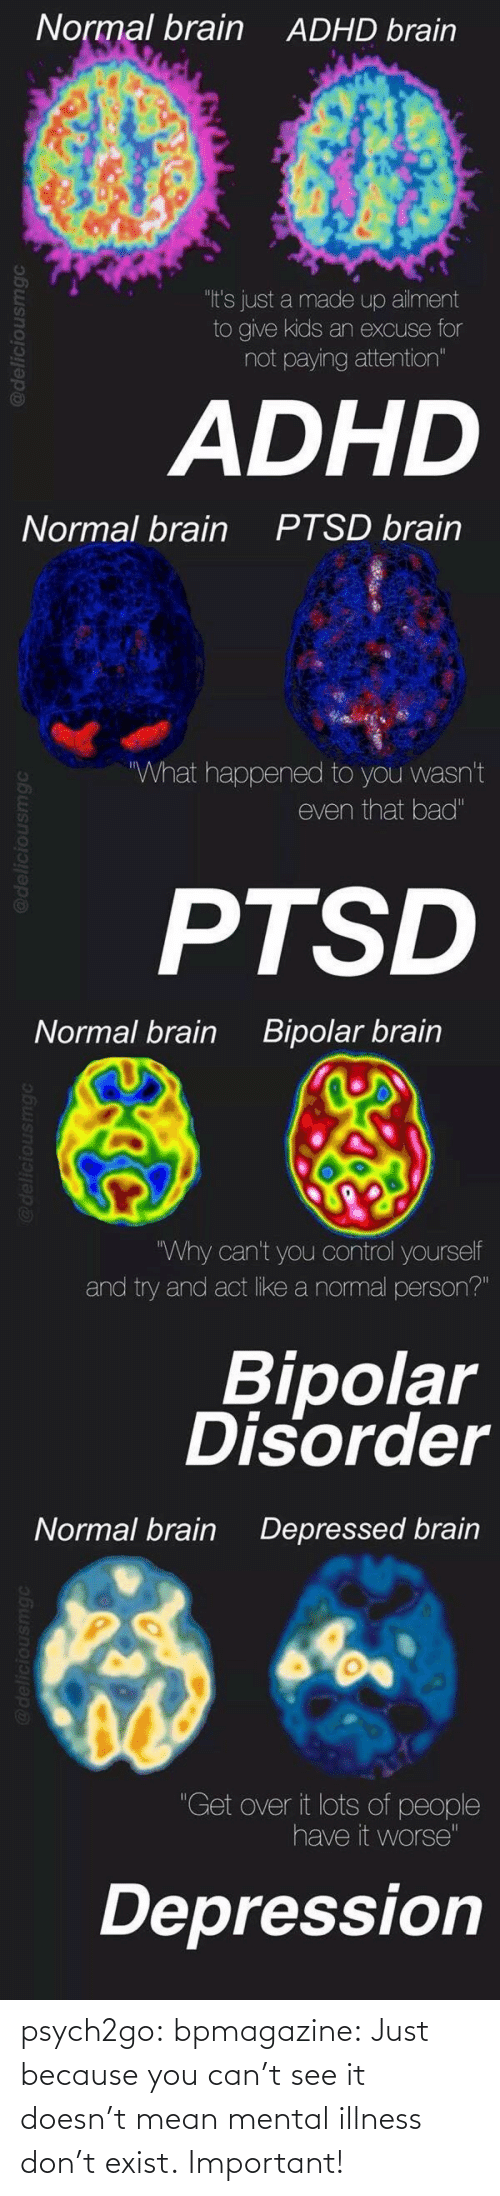 """bipolar disorder: Normal brain  ADHD brain  """"It's just a made up ailment  to give kids an excuse for  not paying attention""""  ADHD   Normal brain  PTSD brain  What happened to you wasn't  even that bad""""  PTSD   Normal brain  Bipolar brain  Why can't you control yourself  and try and act like a normal person?""""  Bipolar  Disorder   Normal brain  Depressed brain  """"Get over it lots of people  have it worse""""  Depression psych2go:  bpmagazine:  Just because you can't see it doesn't mean mental illness don't exist.  Important!"""